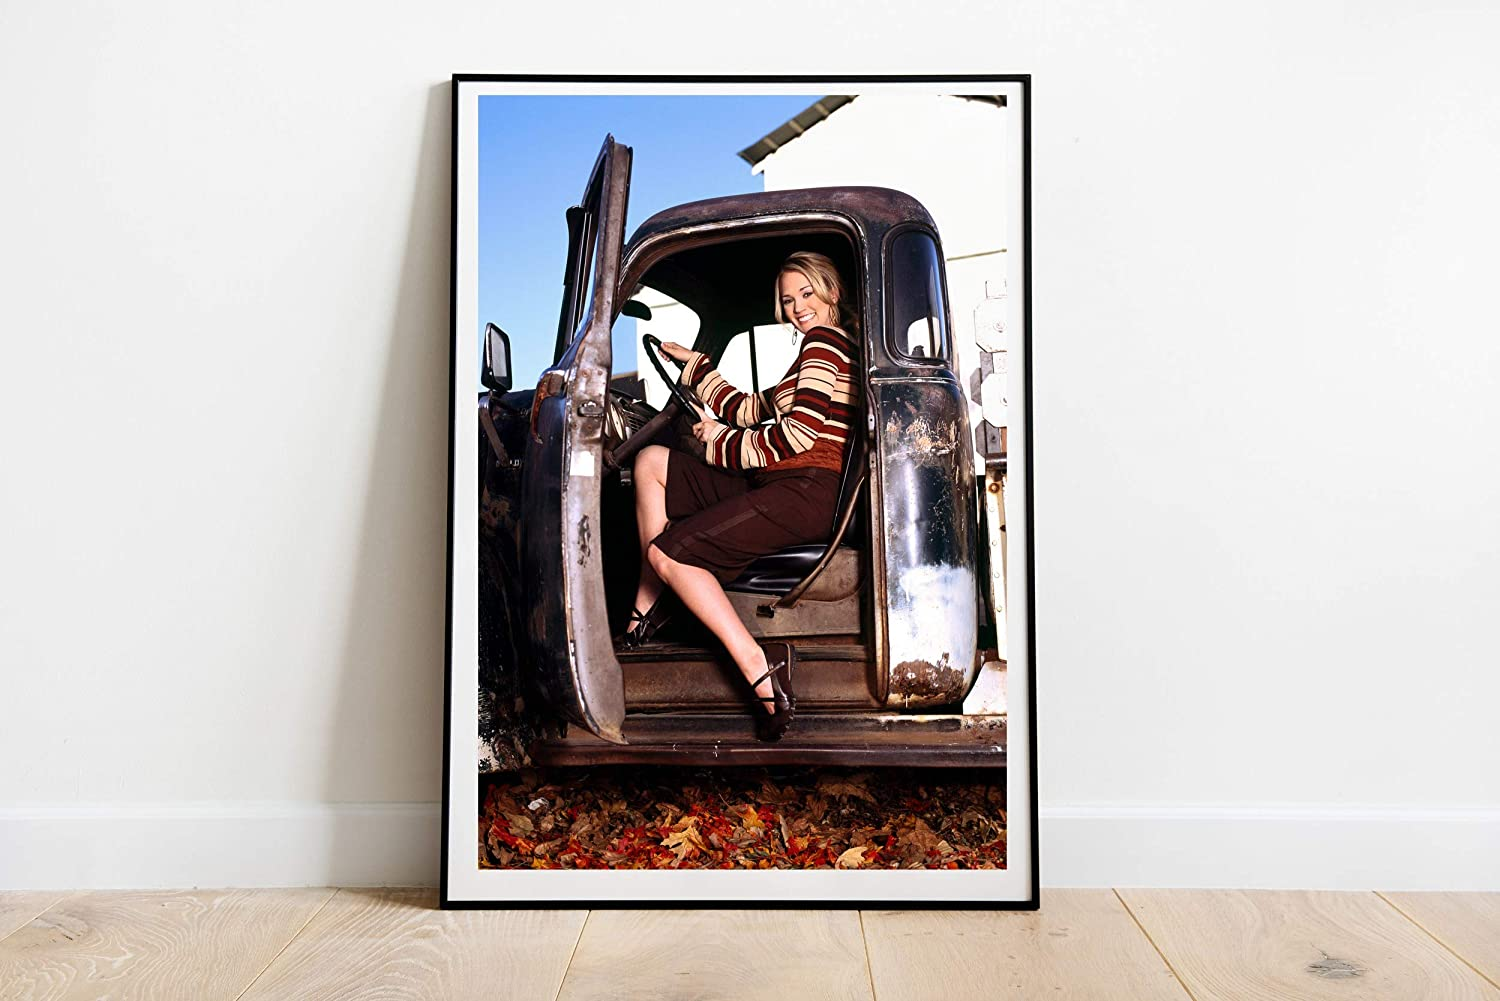 """Country Pop Singer Carrie Underwood Poster Wall Decor Art Wall Art Print Gift Poster Unframed Poster Print Canvas Printing Size - 11""""x17"""" 18""""x24"""" 24""""x32"""" 24""""x36"""" (L - 24""""x32"""" (61x81cm))"""